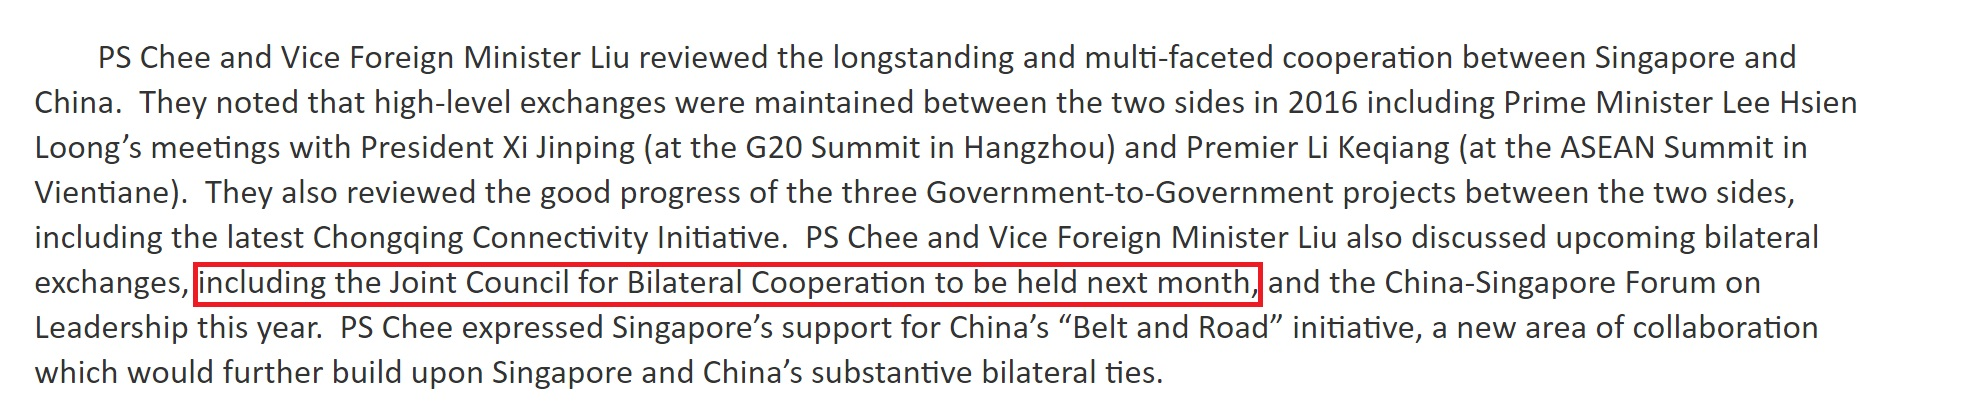 Source: Ministry of Foreign Affairs website.